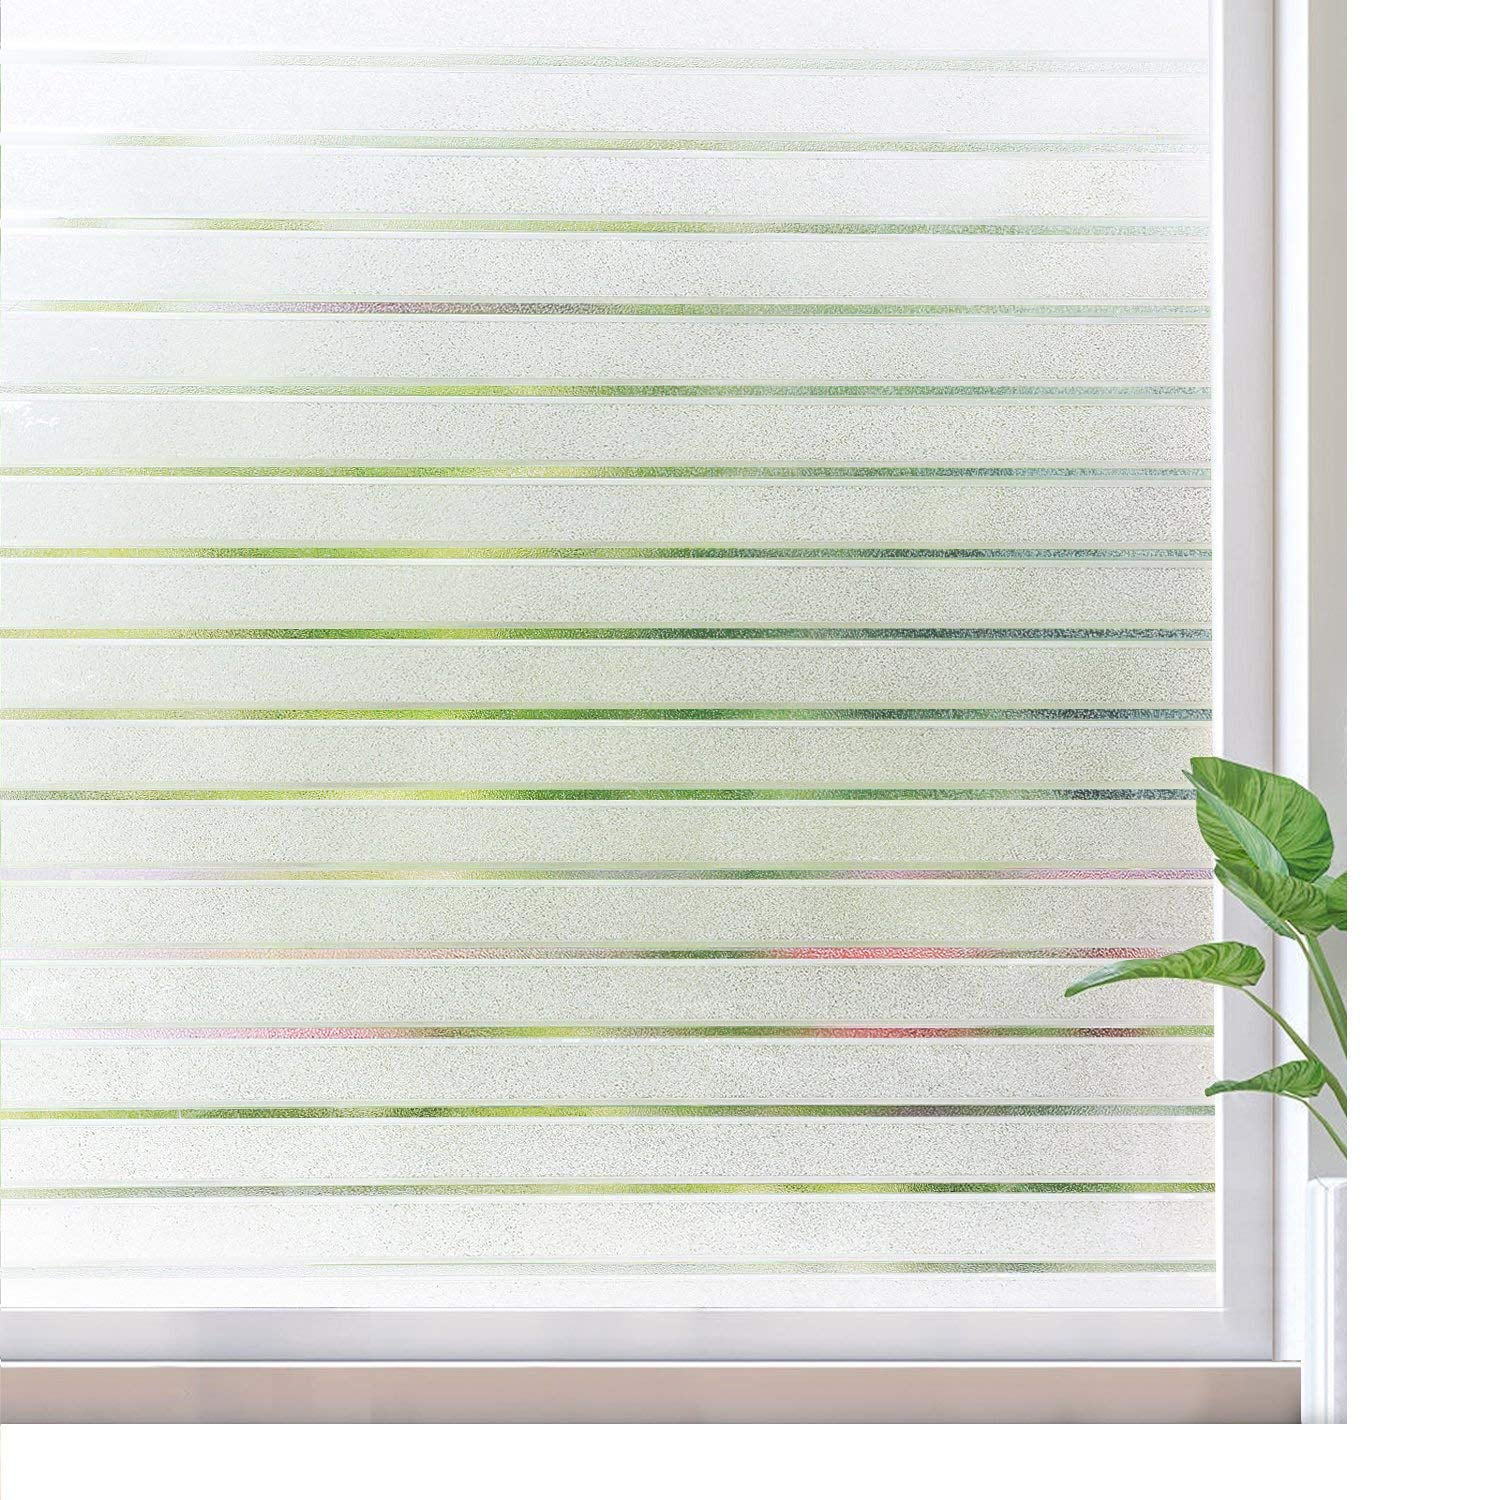 rabbitgoo Frosted Window Film Static Cling Decorative Glass Film UV Protection Window Privacy Film Non Adhesive Window Cling for Home Office Meeting Room, Frosted Stripe Patterns, 17.5 x 78.7 inches